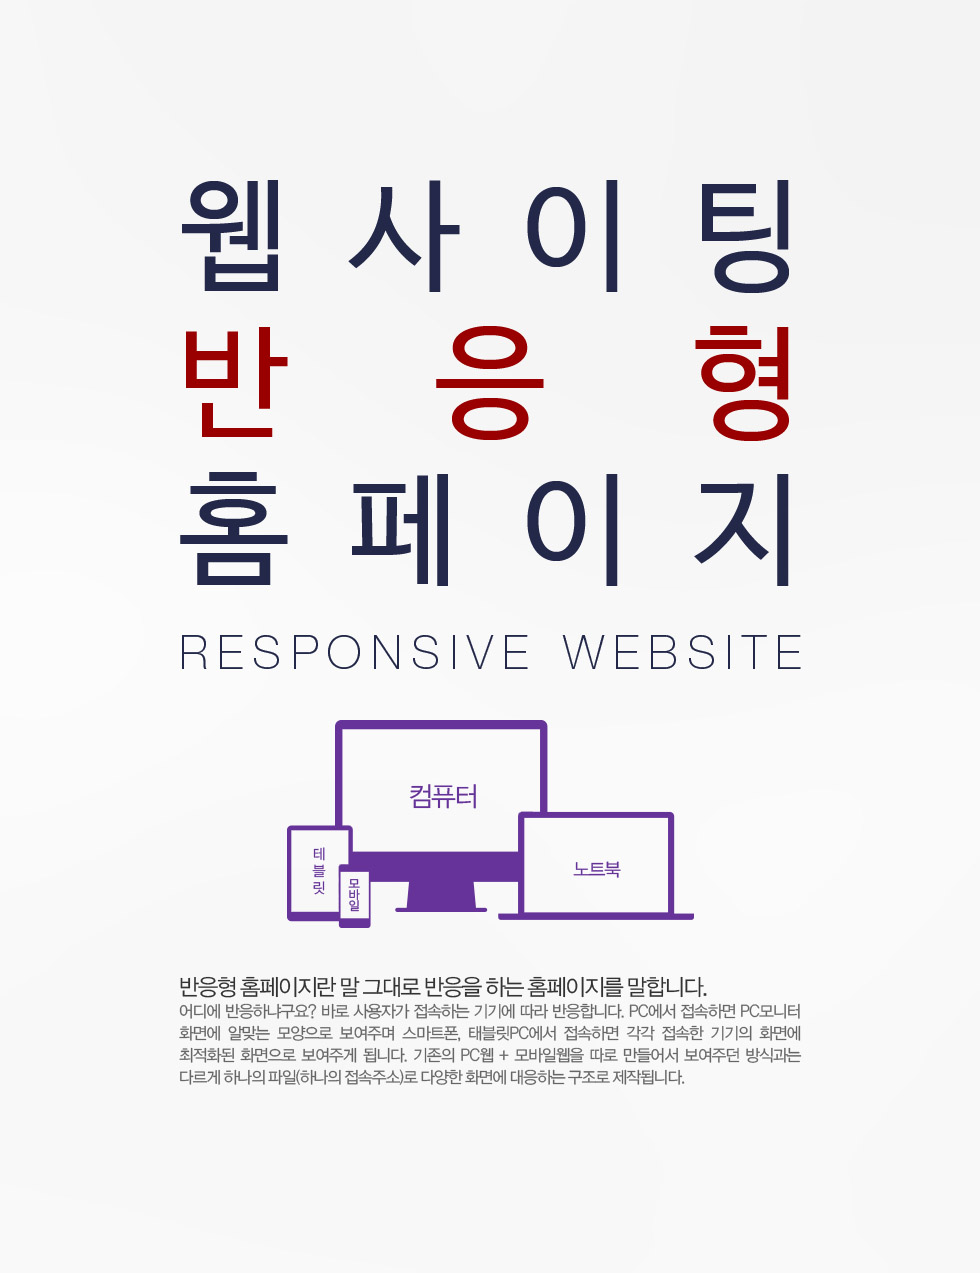 Responsive website by WEBsiting